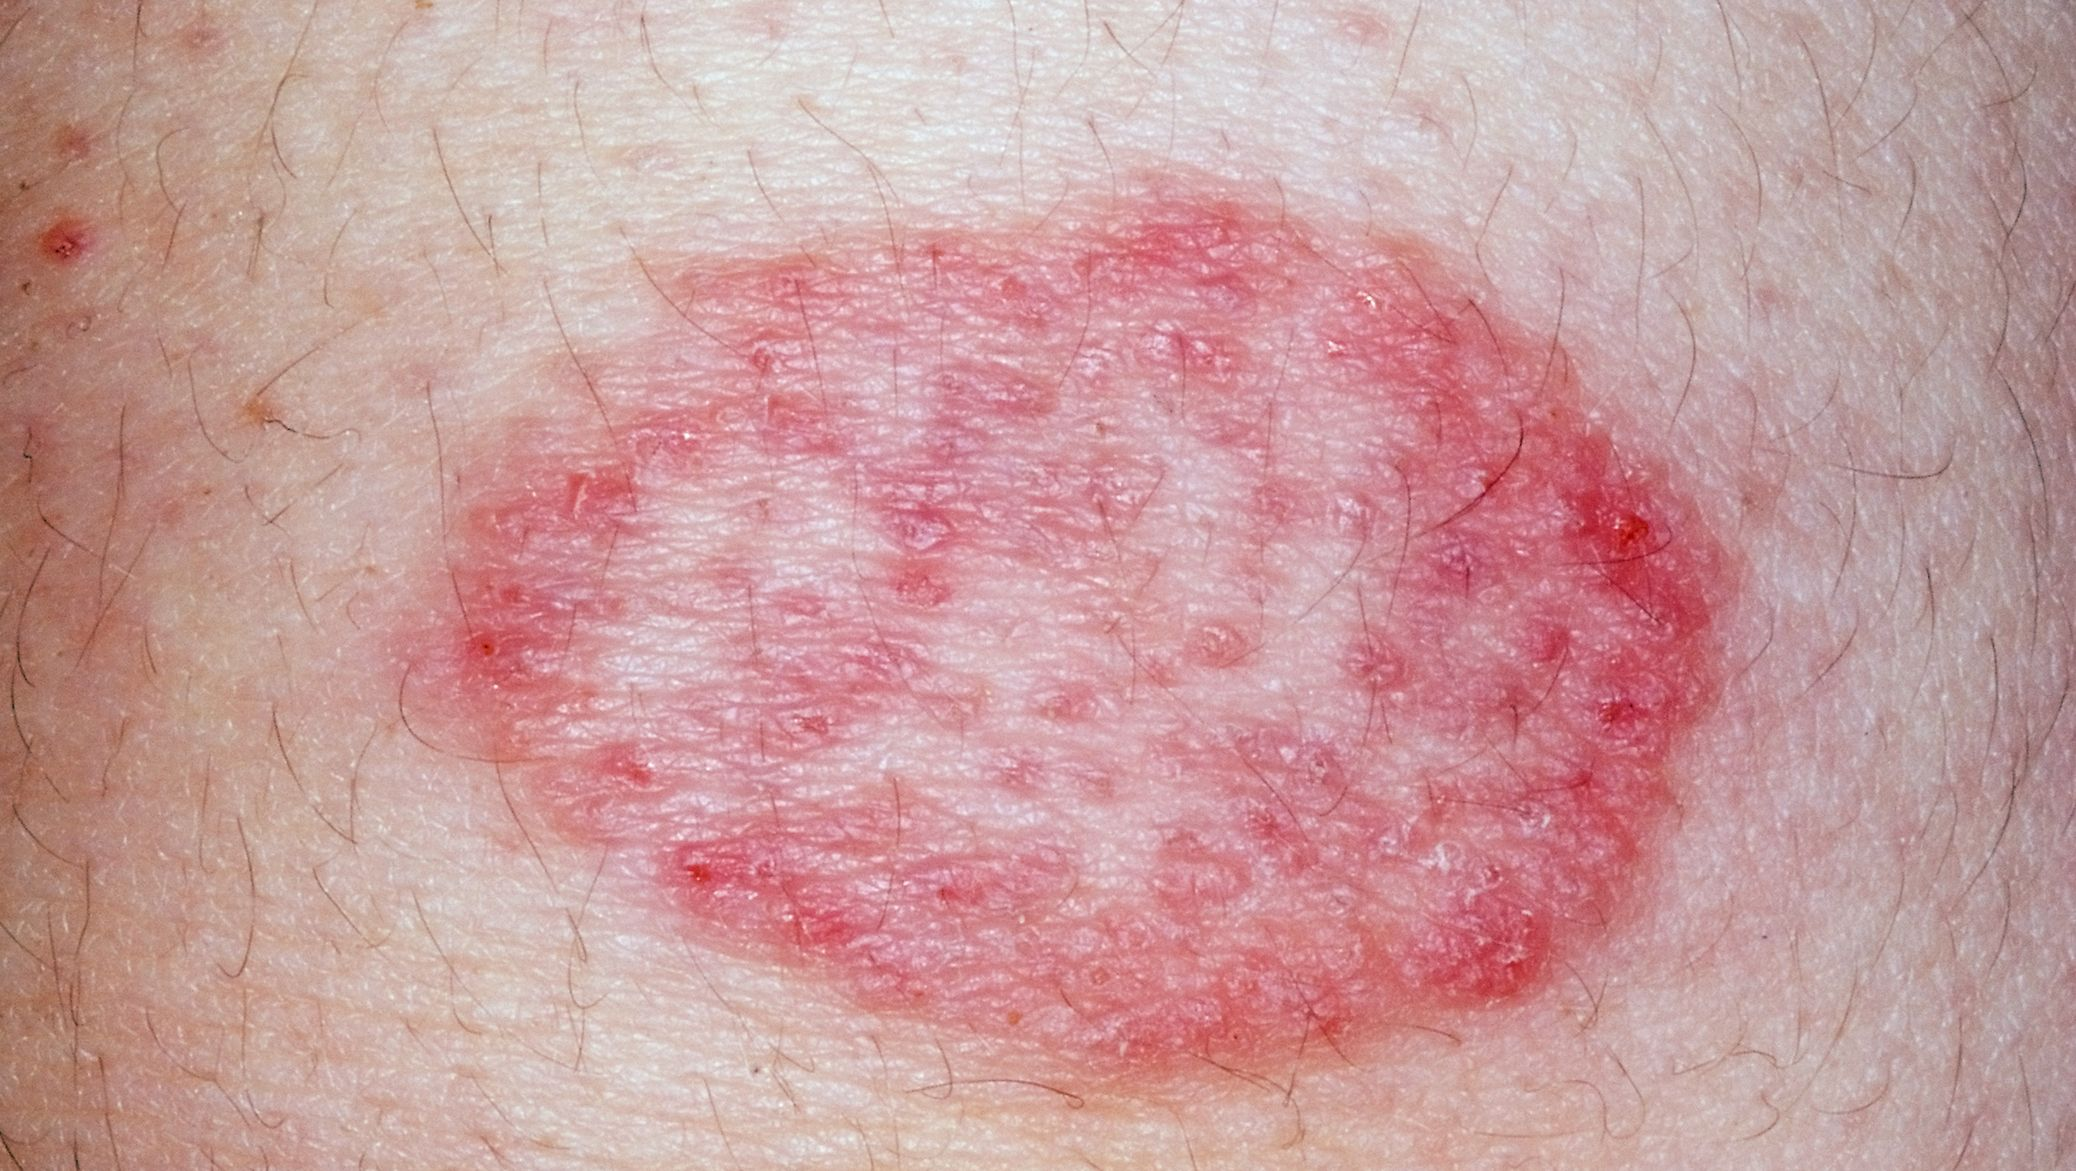 tinea infection